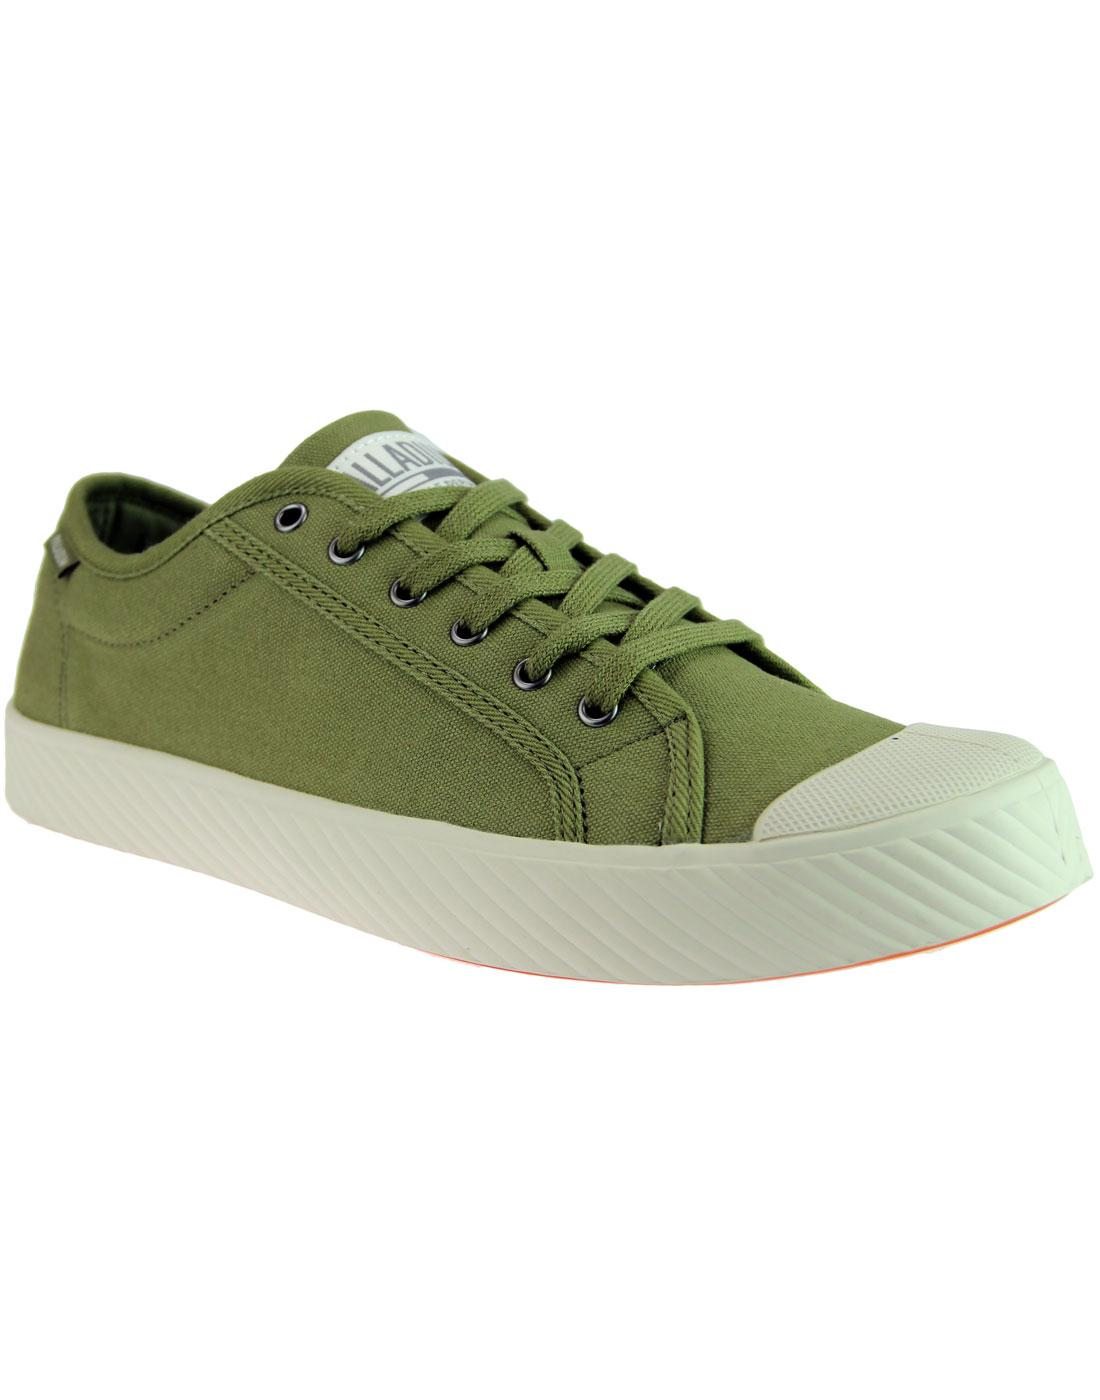 Pallaphoenix PALLADIUM Mens Canvas Trainers OLIVE